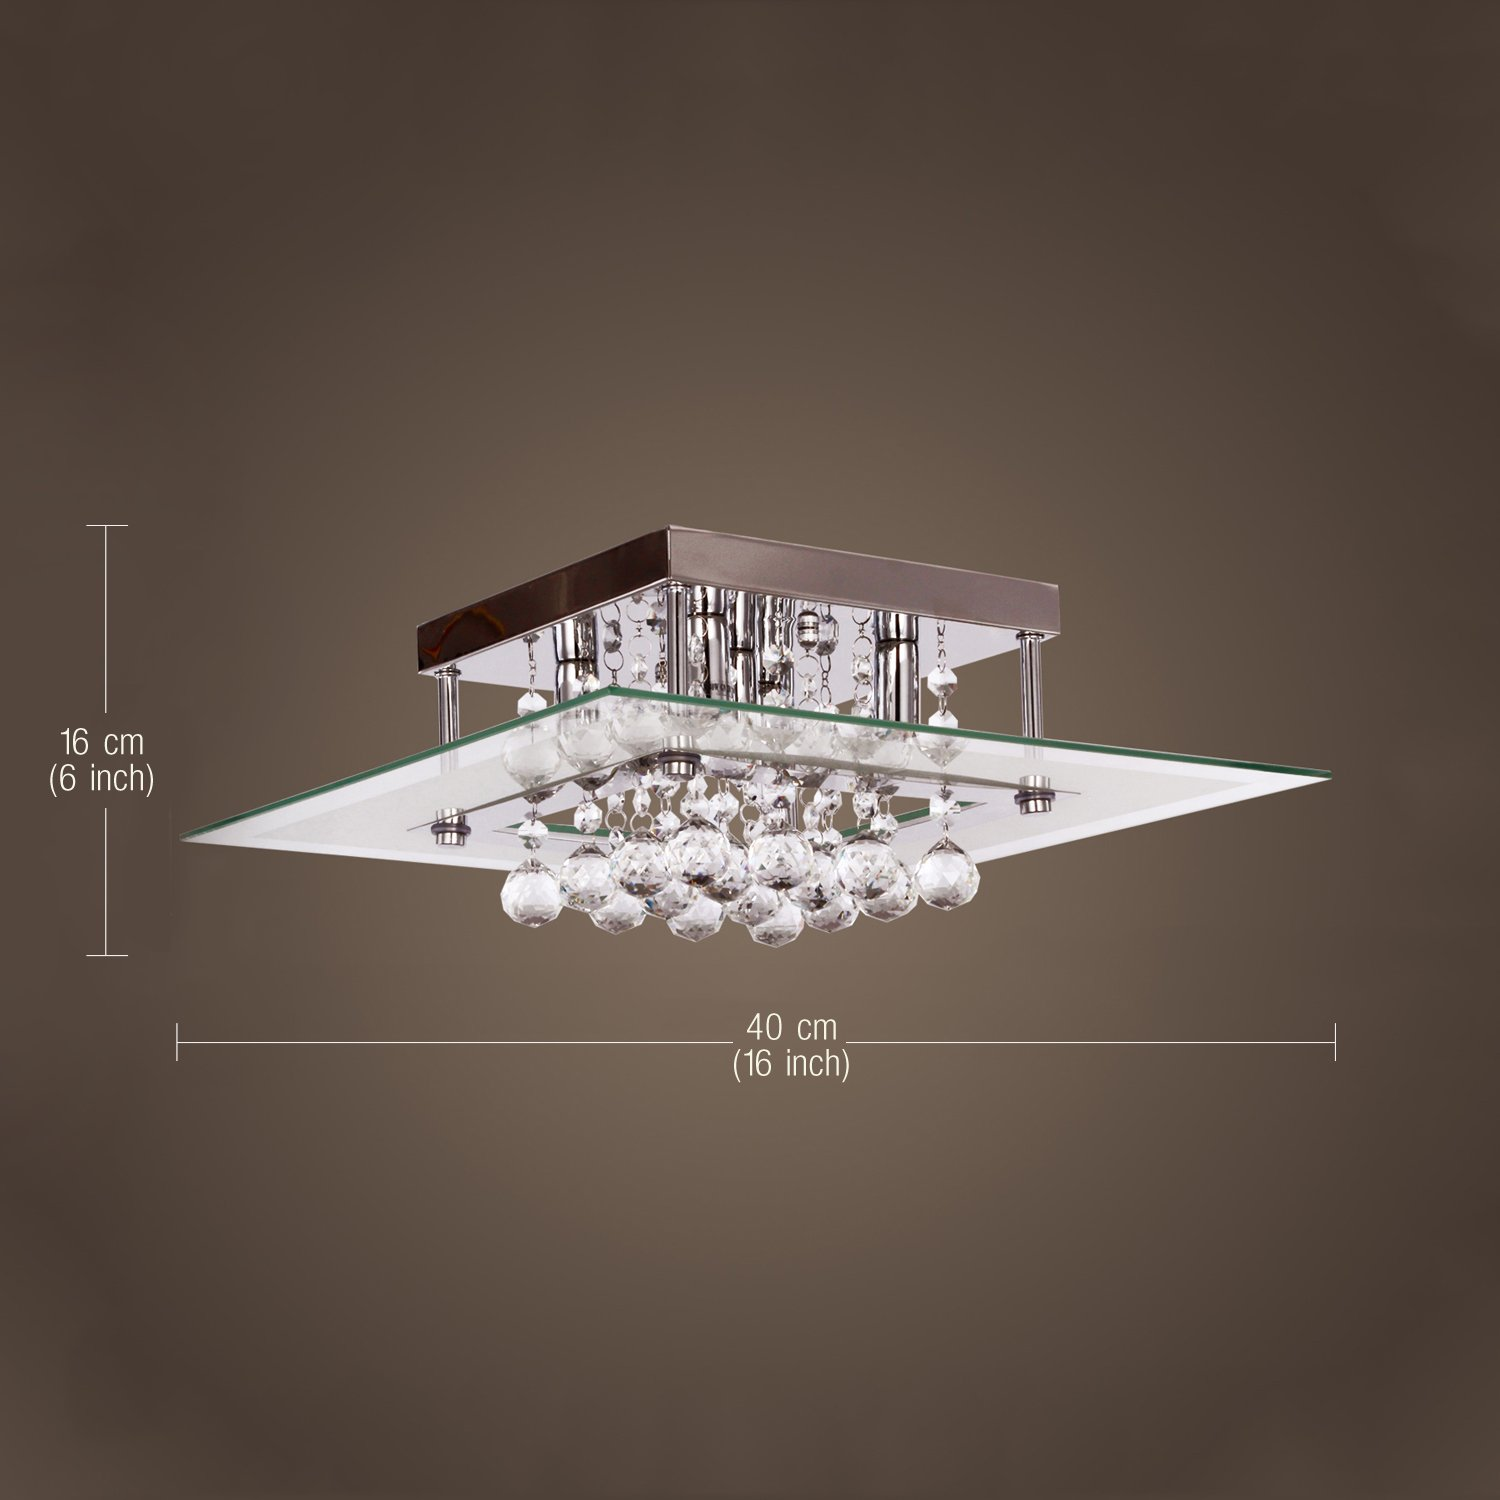 polished pc capitol valley flush light geneva cfm hudson ceiling ceilings wide inch finish shown item glass in lighting magnifying chrome image mount